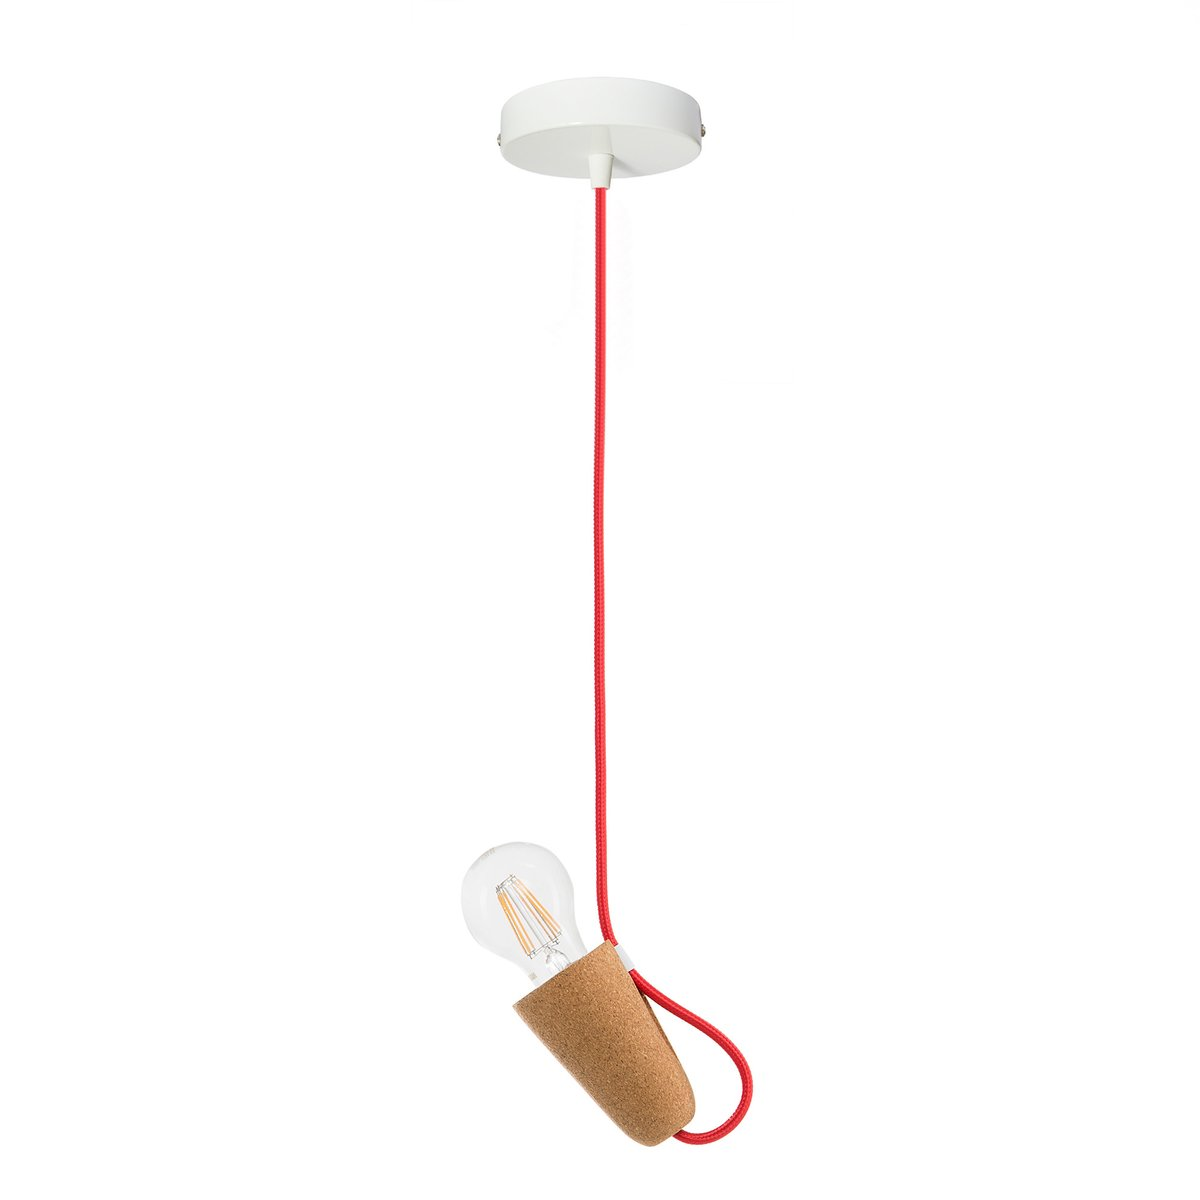 Sininho Pendant Lamp in Light Cork with Red Wire from Galula for ...